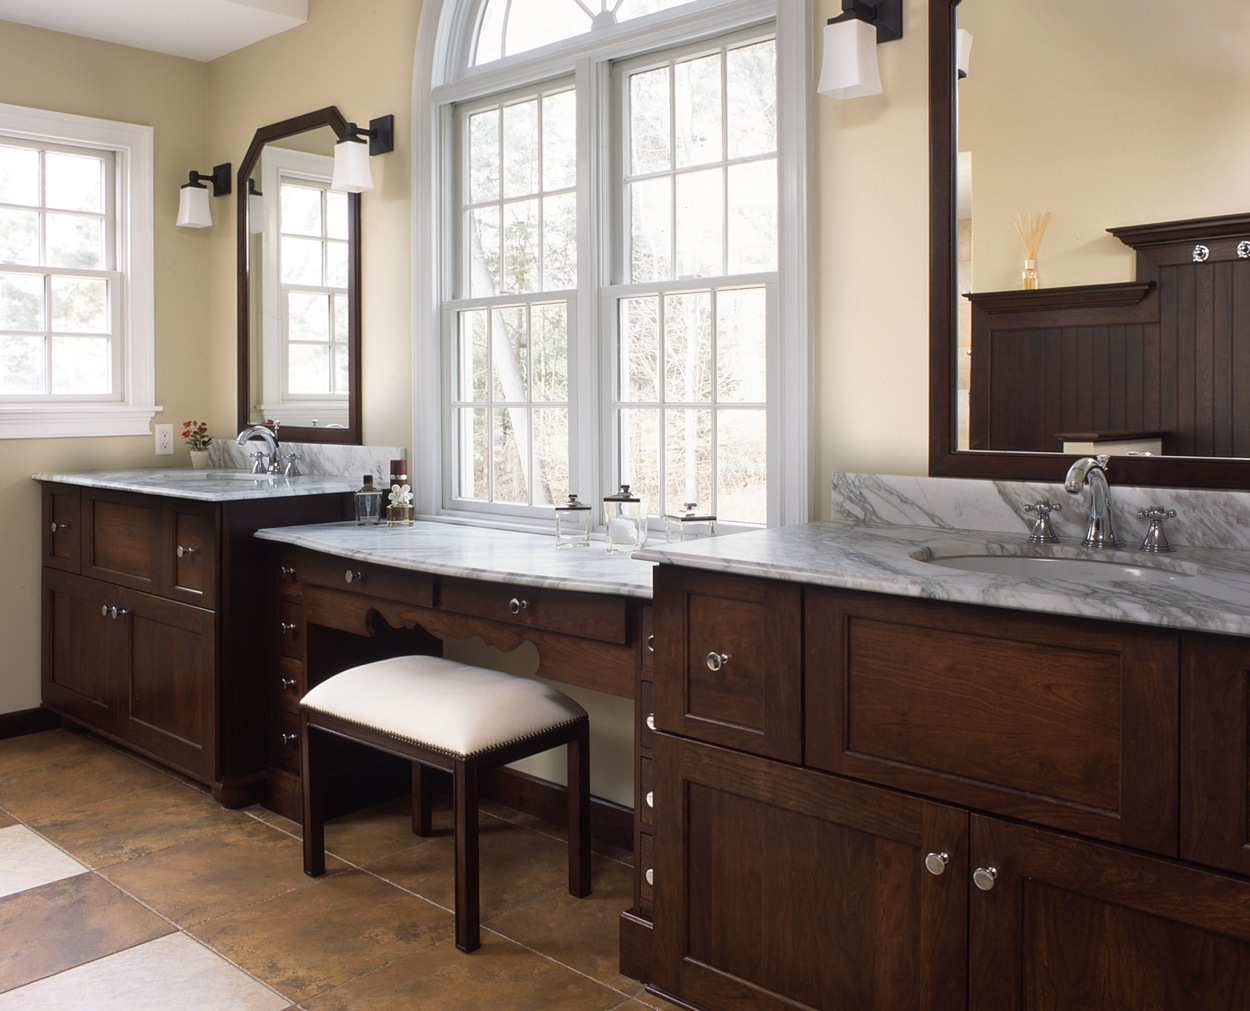 Dual vanities with a makeup area between in this Redding master bath renovation.